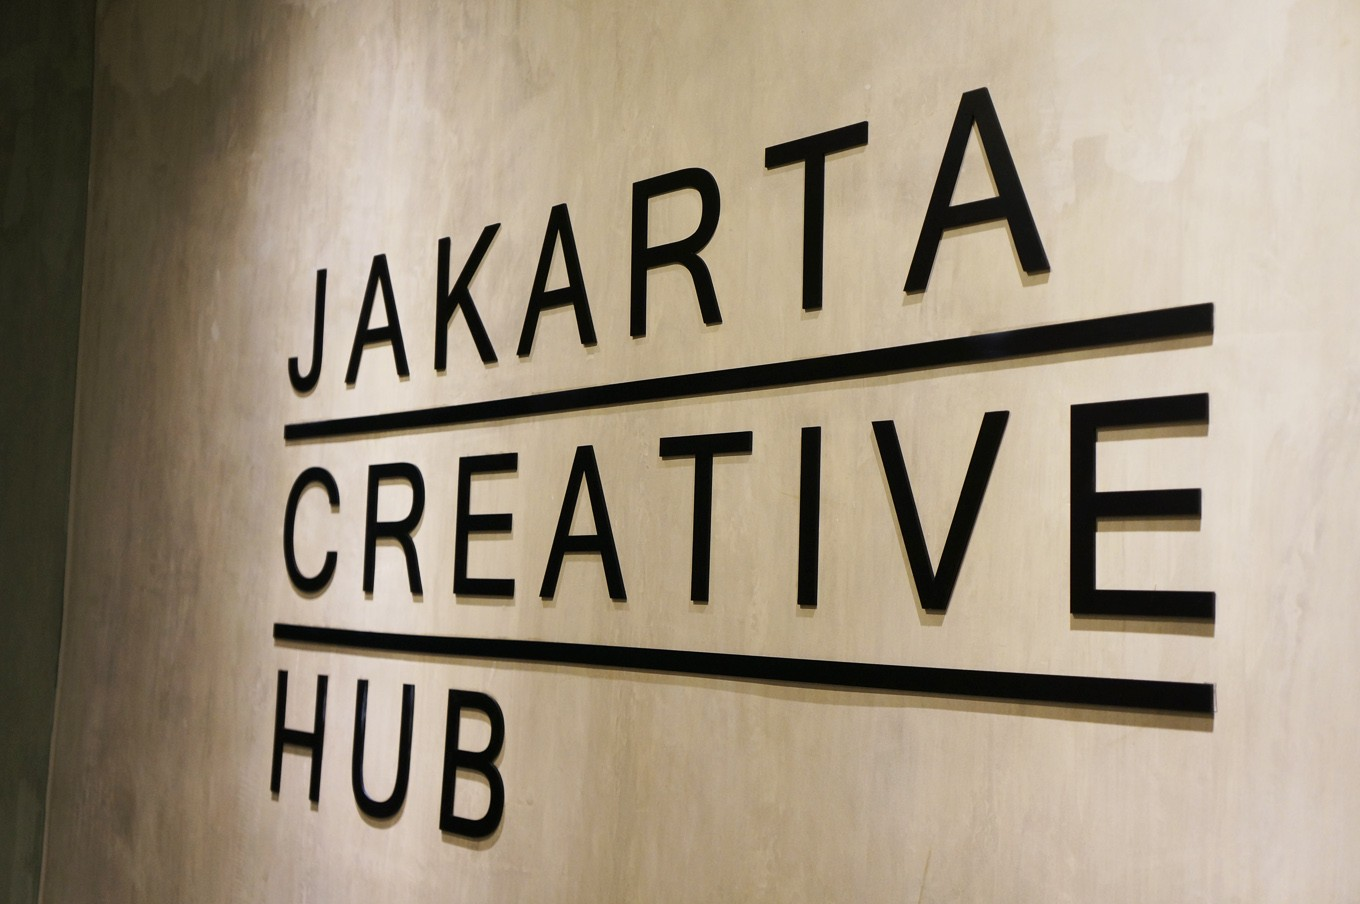 The co-working space can be found at the first floor of Graha Niaga building in Melati reservoir area, Tanah Abang, near the Thamrin City and Grand Indonesia Shopping Mall in Central Jakarta.